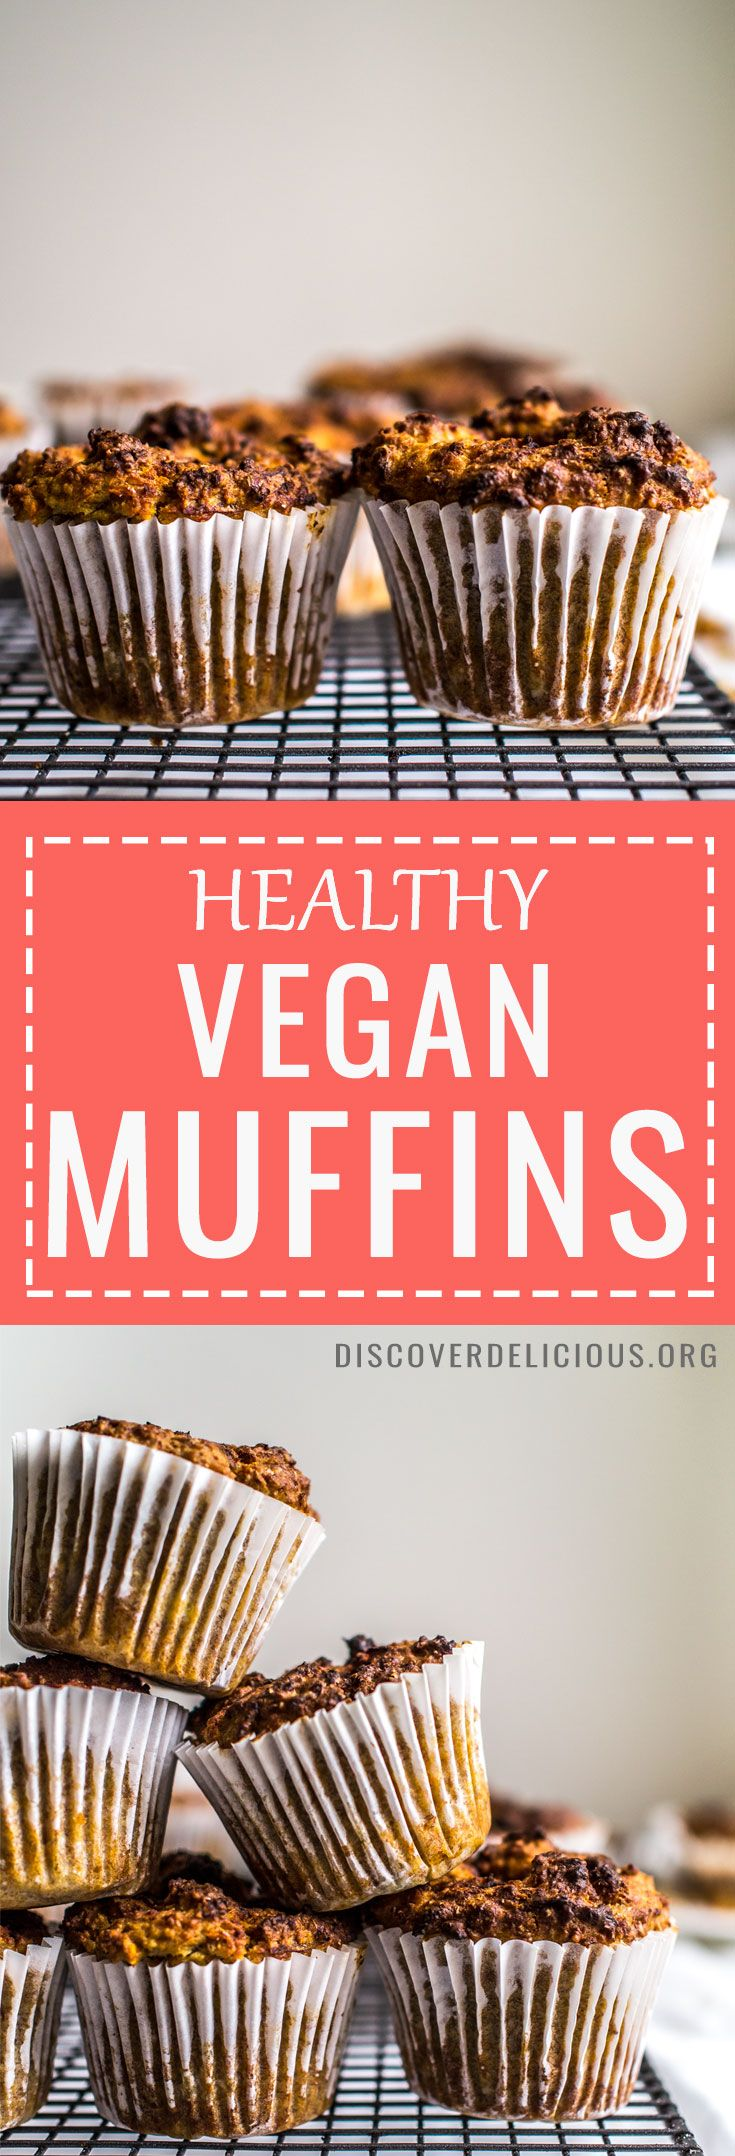 Healthy Vegan Muffins! So delicious with hidden goodness packed in: naturally sweetened by apples and sweet potato, carrot, zucchini or beetroot, and held together by mashed banana! Perfect for breakfast, in lunchboxes or as a snack. #muffin #recipe #recipes #lunchbox #plant #based #easy #oatmeal #sugar #free #dairyfree